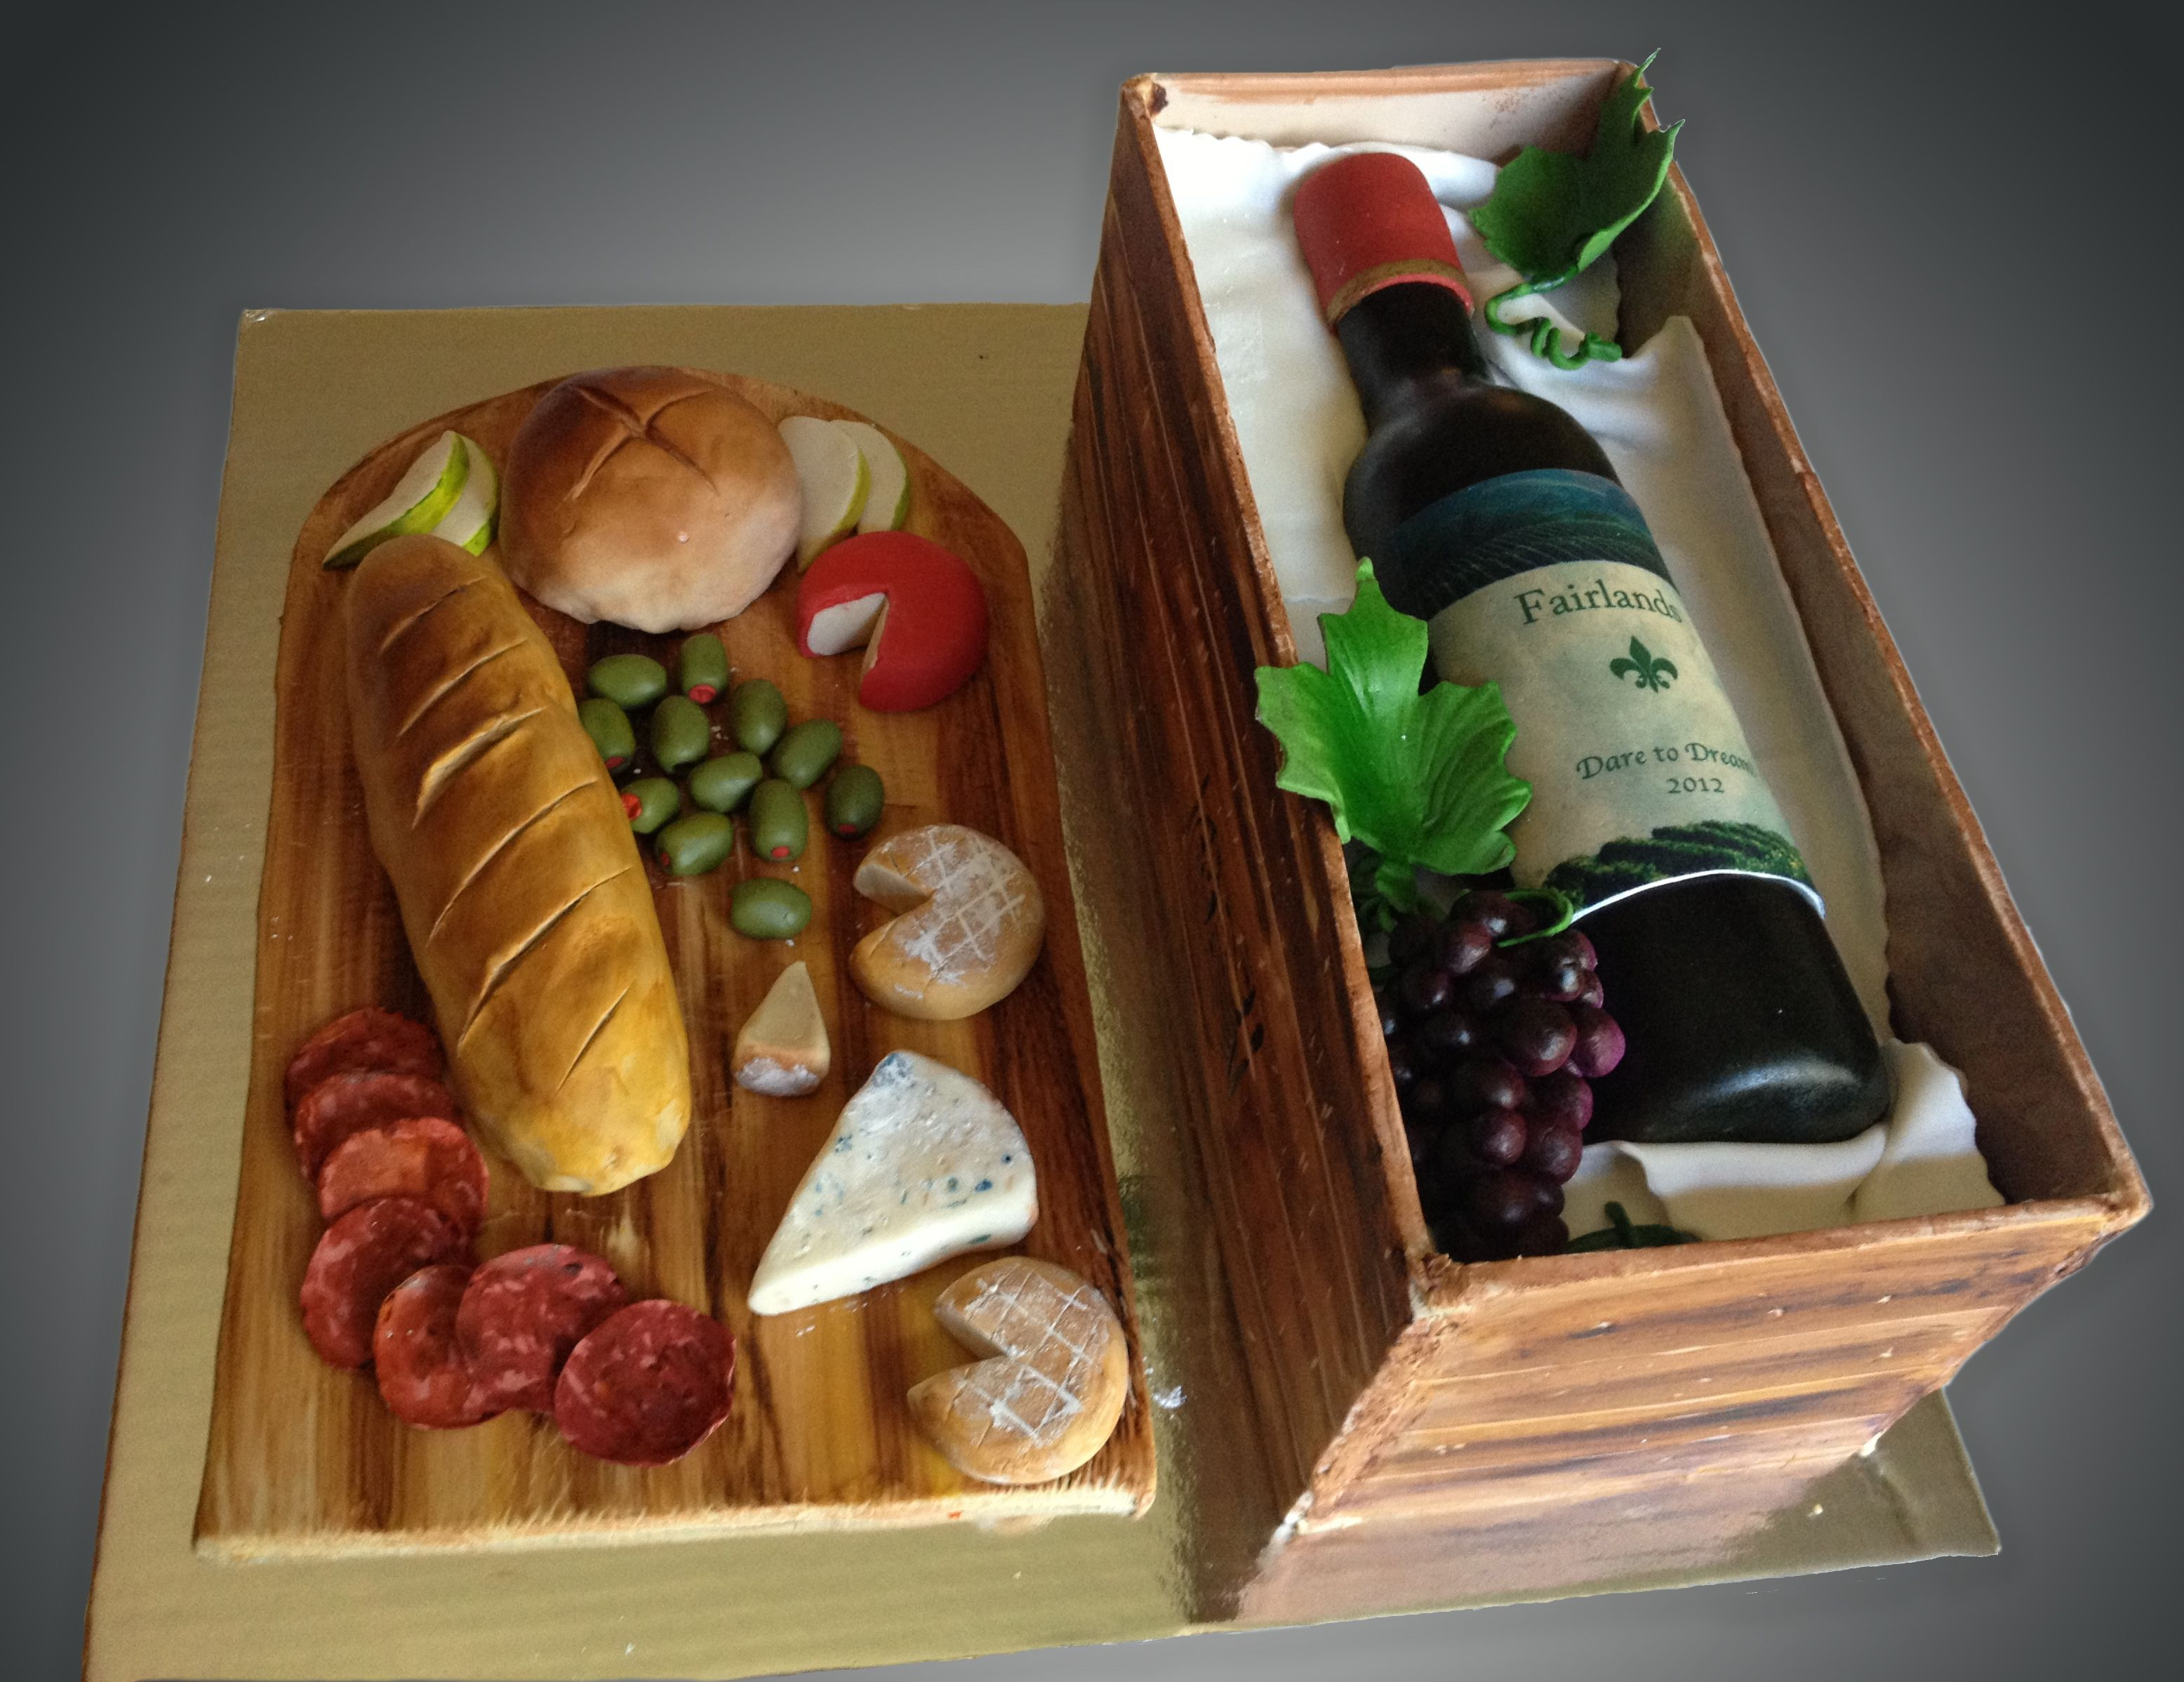 Wine Bottle In A Crate Cake Everything On This Cake Is